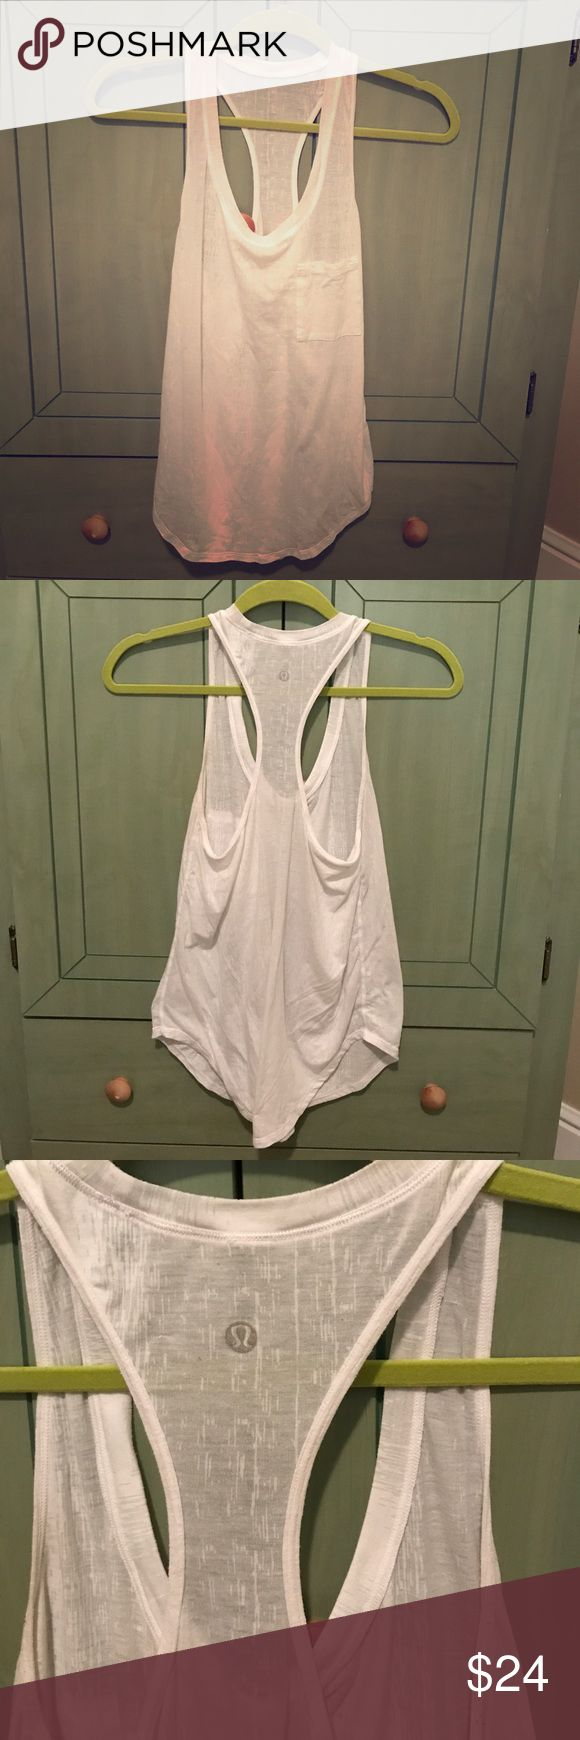 "Lululemon white ""Burnout Yogi Racerback"" Great to wear alone or under something  *last pic: stock image. Other pics are of this tank lululemon athletica Tops Tank Tops"